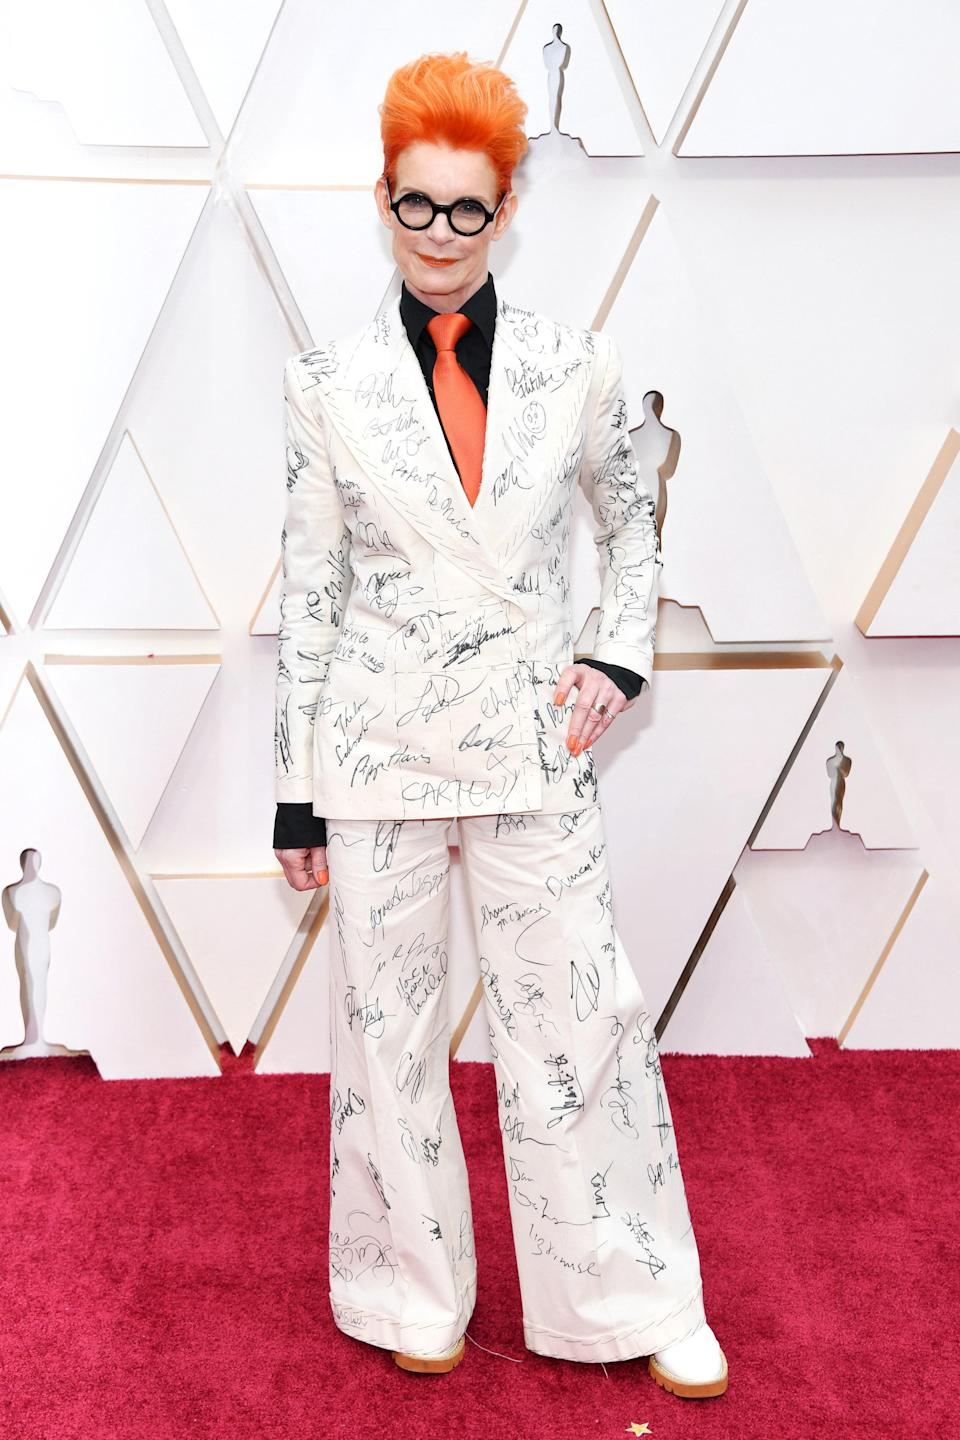 """Veteran British costume designer Sandy Powell developed her Oscars look throughout awards season in 2020, but not by working closely with a label. Instead, Powell hit up the various ceremonies in the <a href=""""https://www.vogue.com/vogueworld/article/sandy-powell-baftas-oscars-suit-derek-jerman?mbid=synd_yahoo_rss"""" rel=""""nofollow noopener"""" target=""""_blank"""" data-ylk=""""slk:same cream suit"""" class=""""link rapid-noclick-resp"""">same cream suit</a>, having different A-list stars sign the suit along the way. After the Oscars, she auctioned off the signed suit for an Art Fund charity, which hoped to help preserve and maintain the home of late friend and mentor Derek Jarman, an English filmmaker and artist. It ended up <a href=""""https://www.irishnews.com/magazine/entertainment/2020/03/11/news/suit-signed-by-a-listers-makes-16-000-to-help-jarman-cottage-bid-1865529/"""" rel=""""nofollow noopener"""" target=""""_blank"""" data-ylk=""""slk:fetching"""" class=""""link rapid-noclick-resp"""">fetching</a> roughly $22,230 USD at auction, and featured signatures from Robert De Niro, Renée Zellweger, and more."""